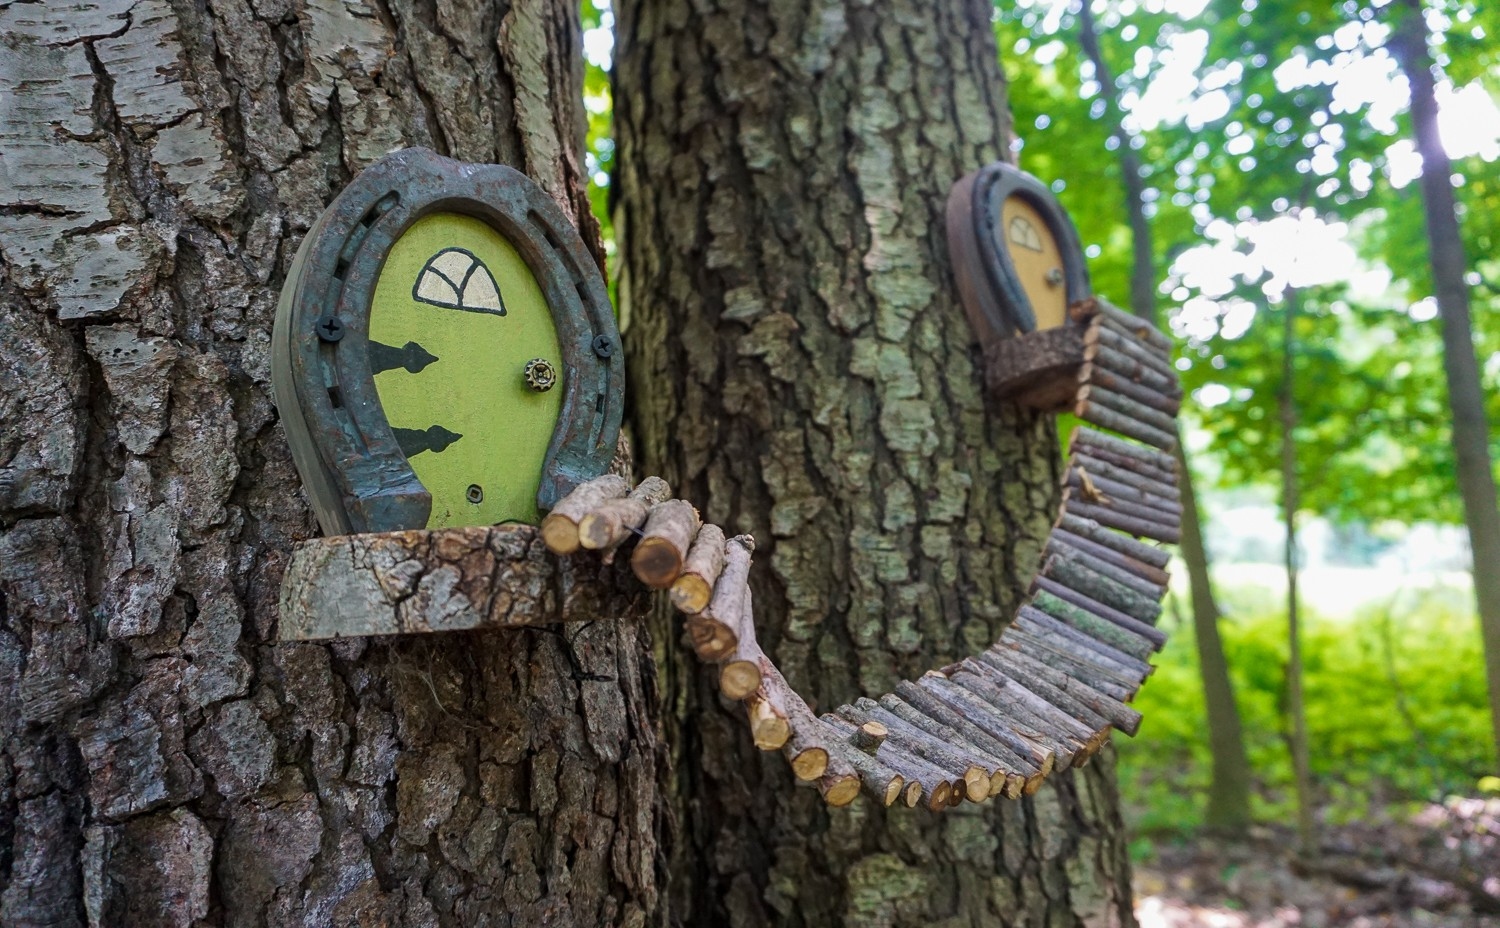 Birdsong Fairy Trail In Mendon Ponds Park Near Rochester